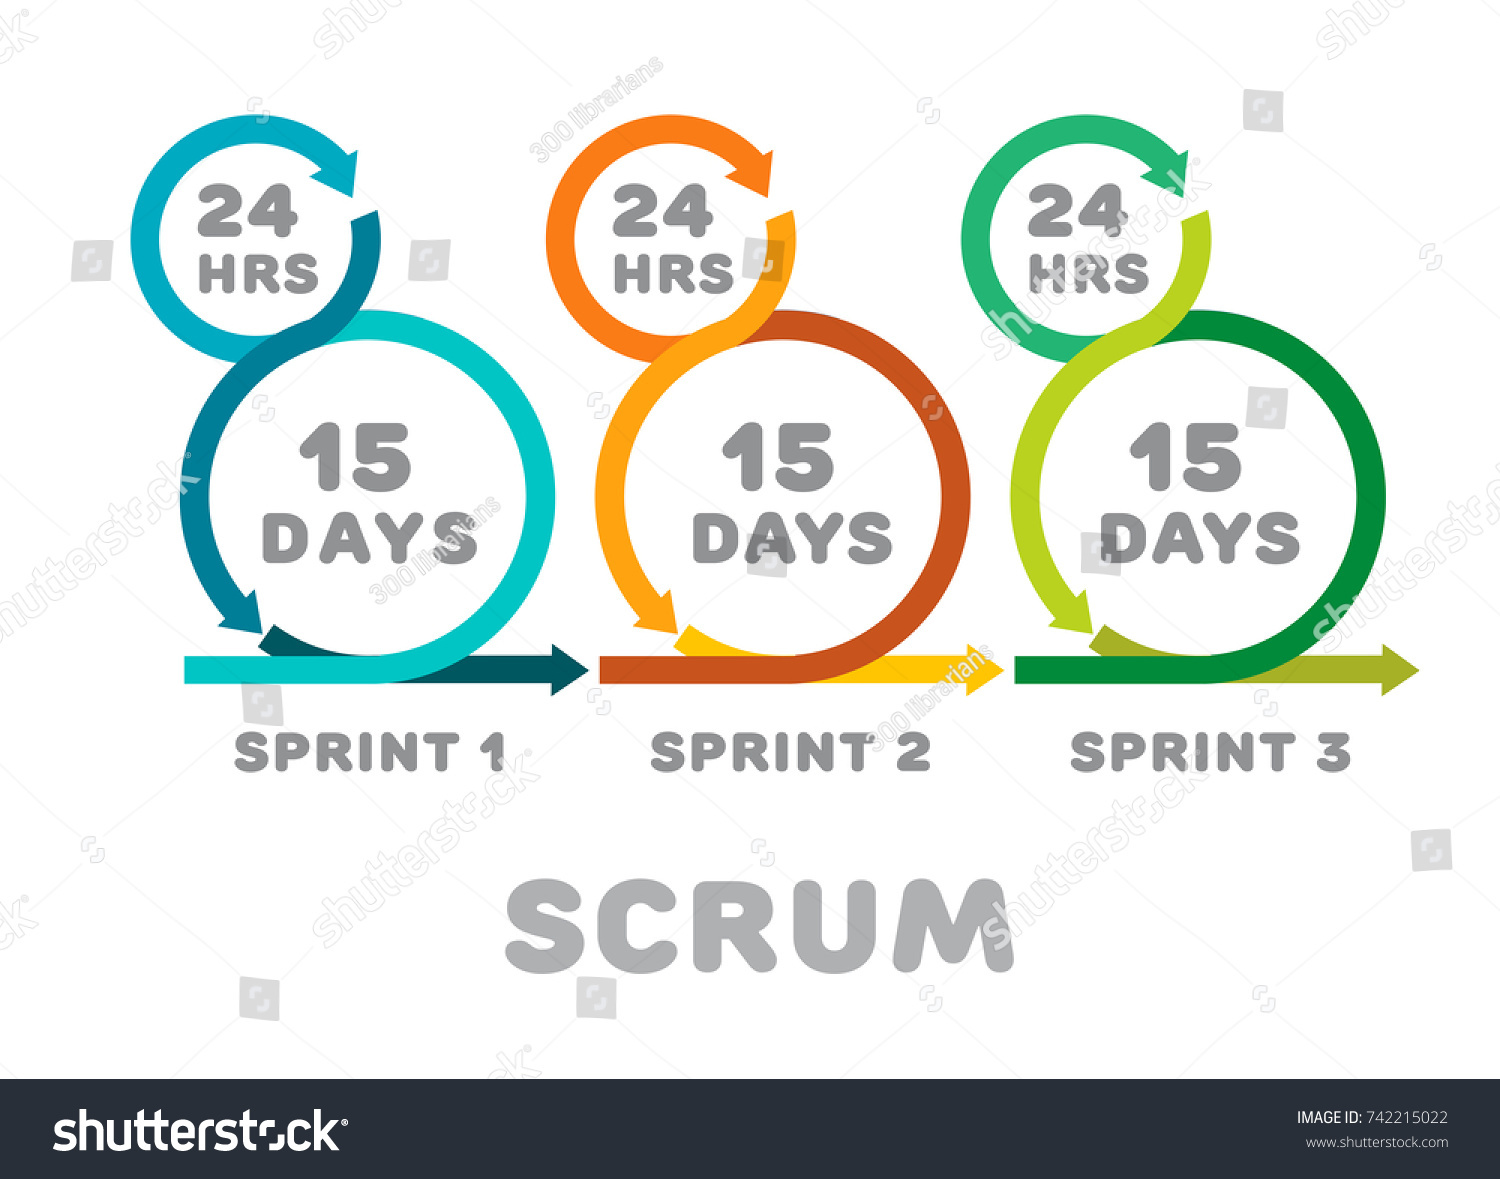 Scrum iteration development software product methodology for Product design team